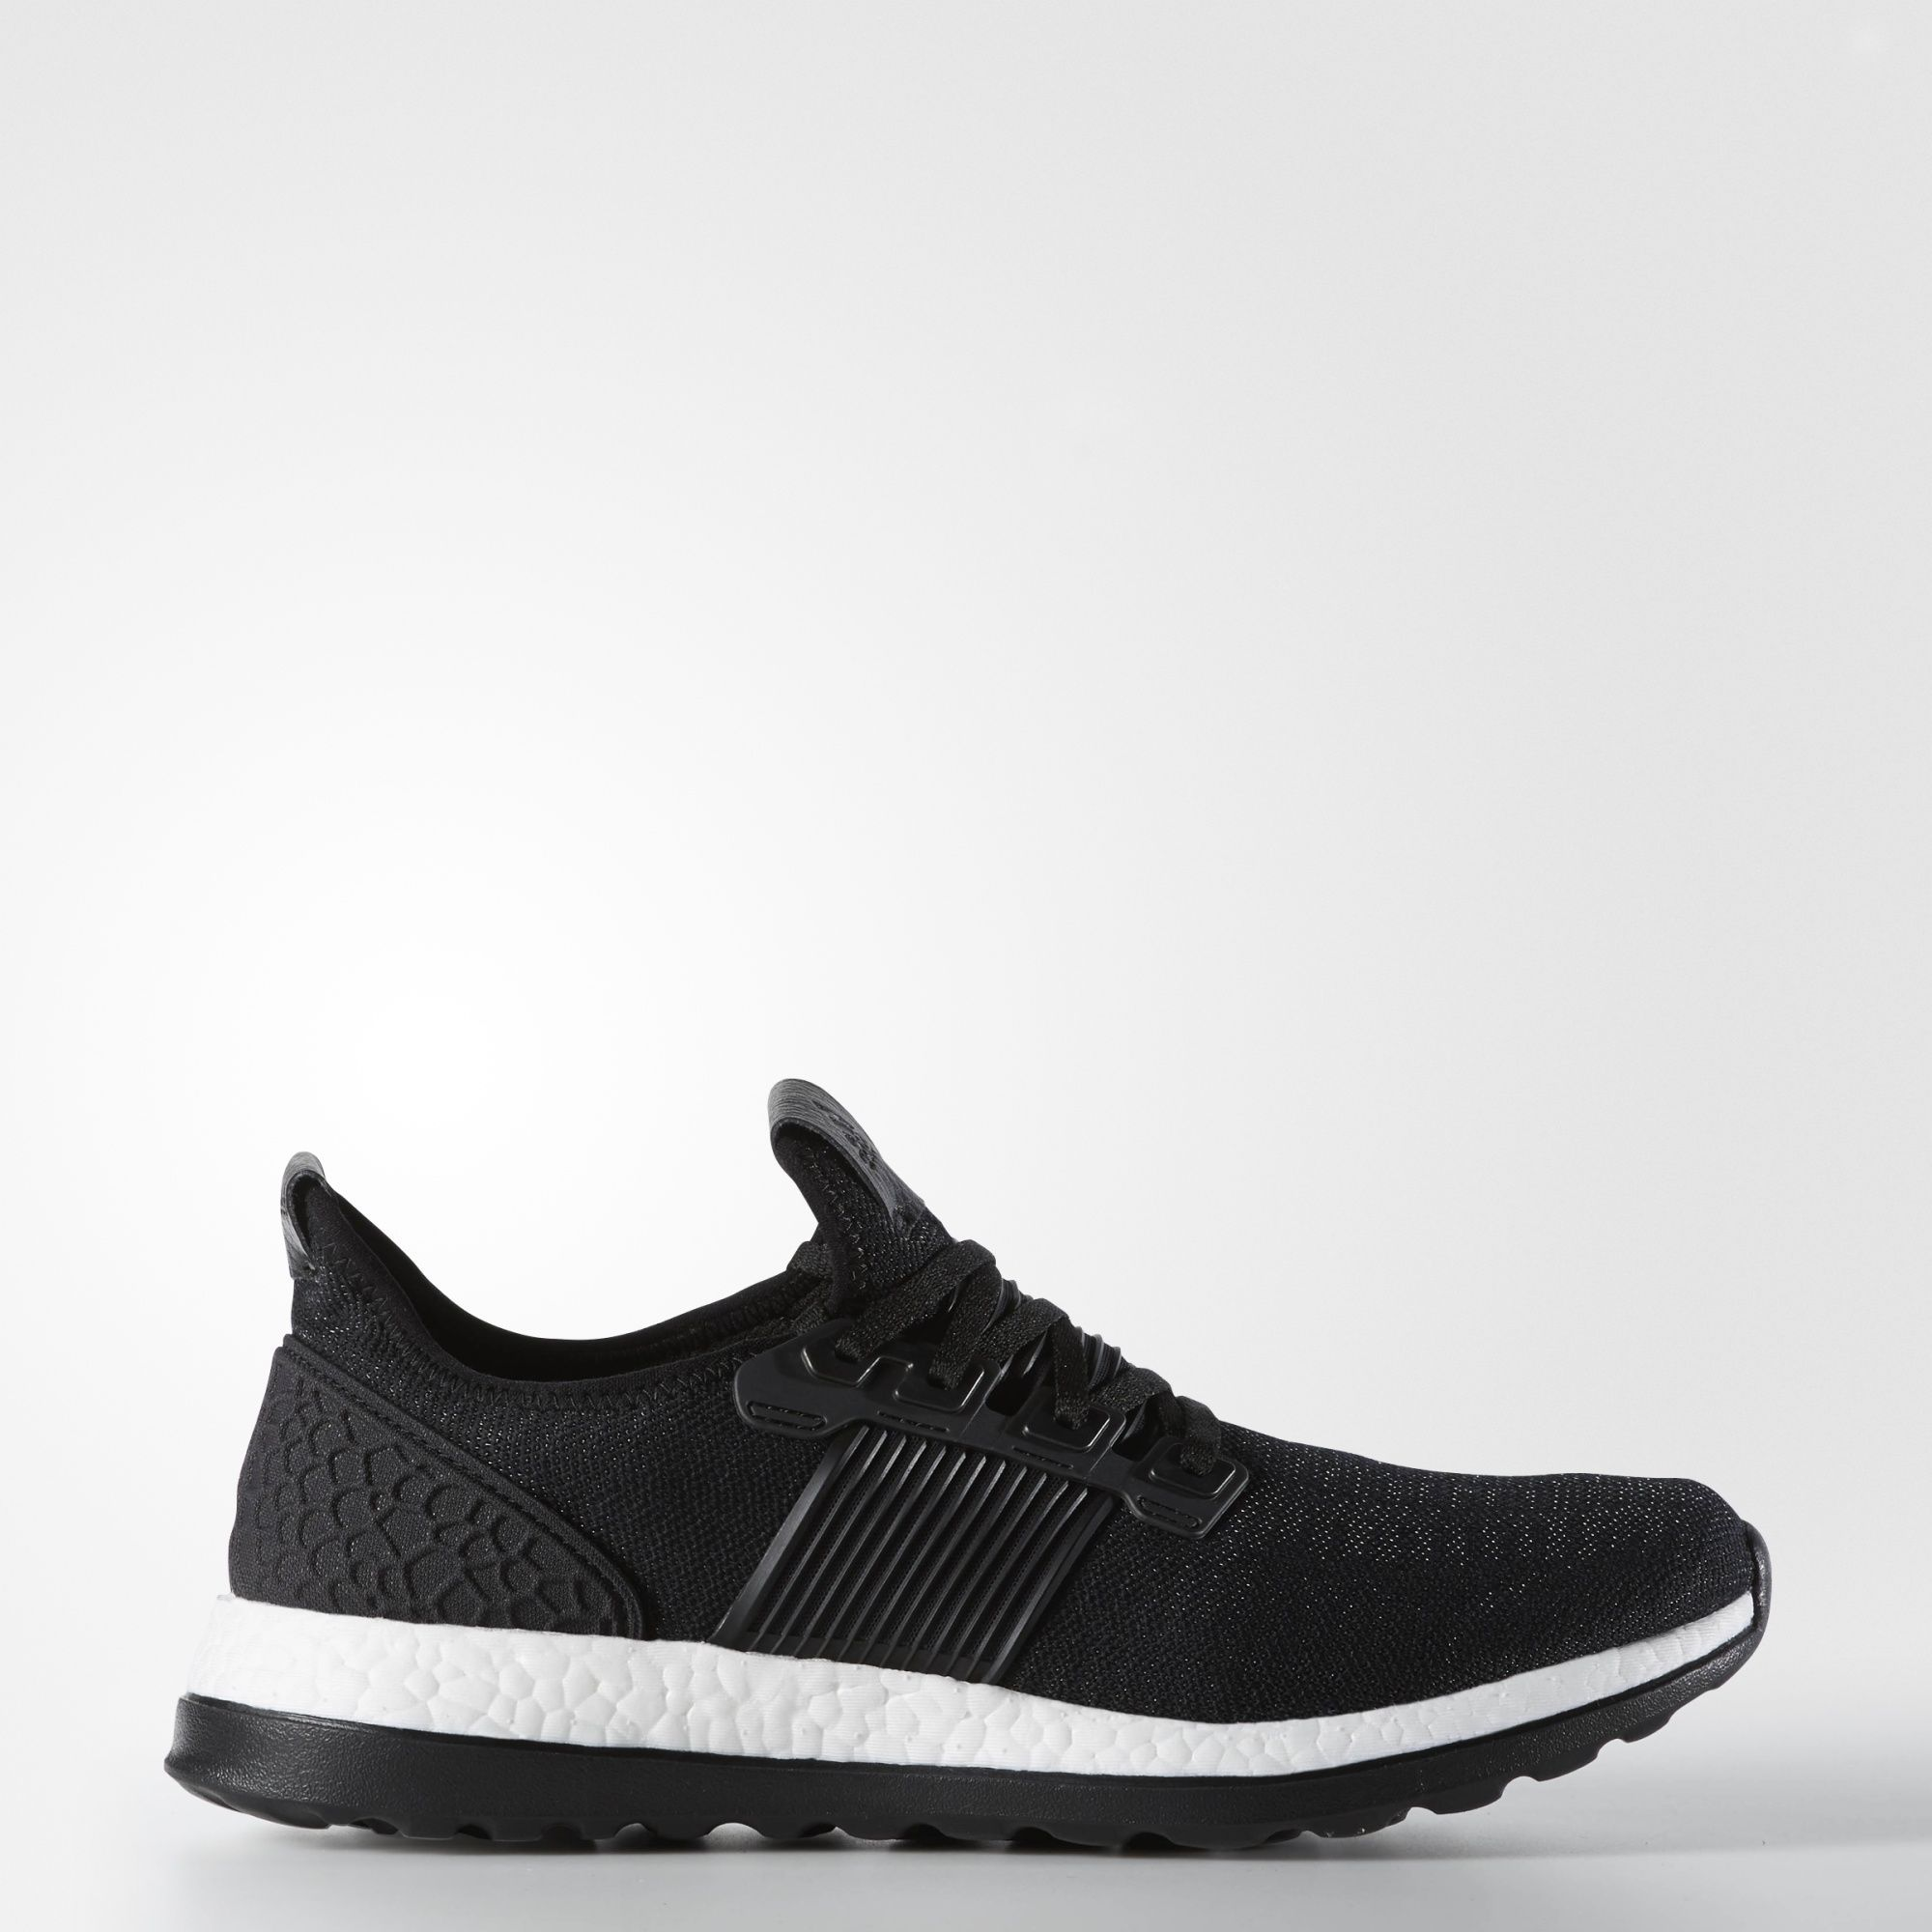 adidas Pure Boost ZG Limited Edition Schuh | UpToDate